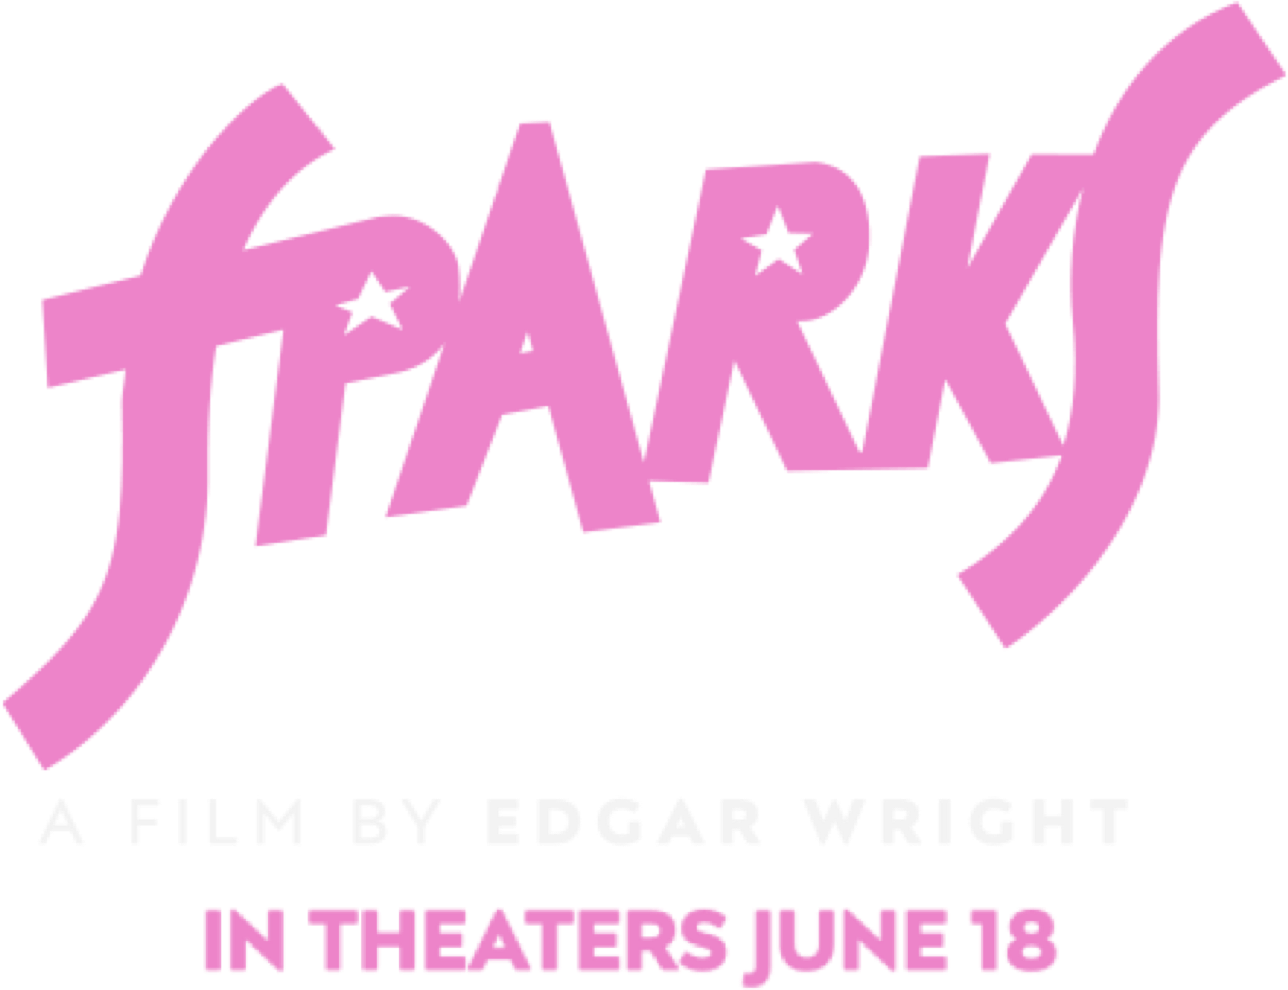 Title or logo for The Sparks Brothers